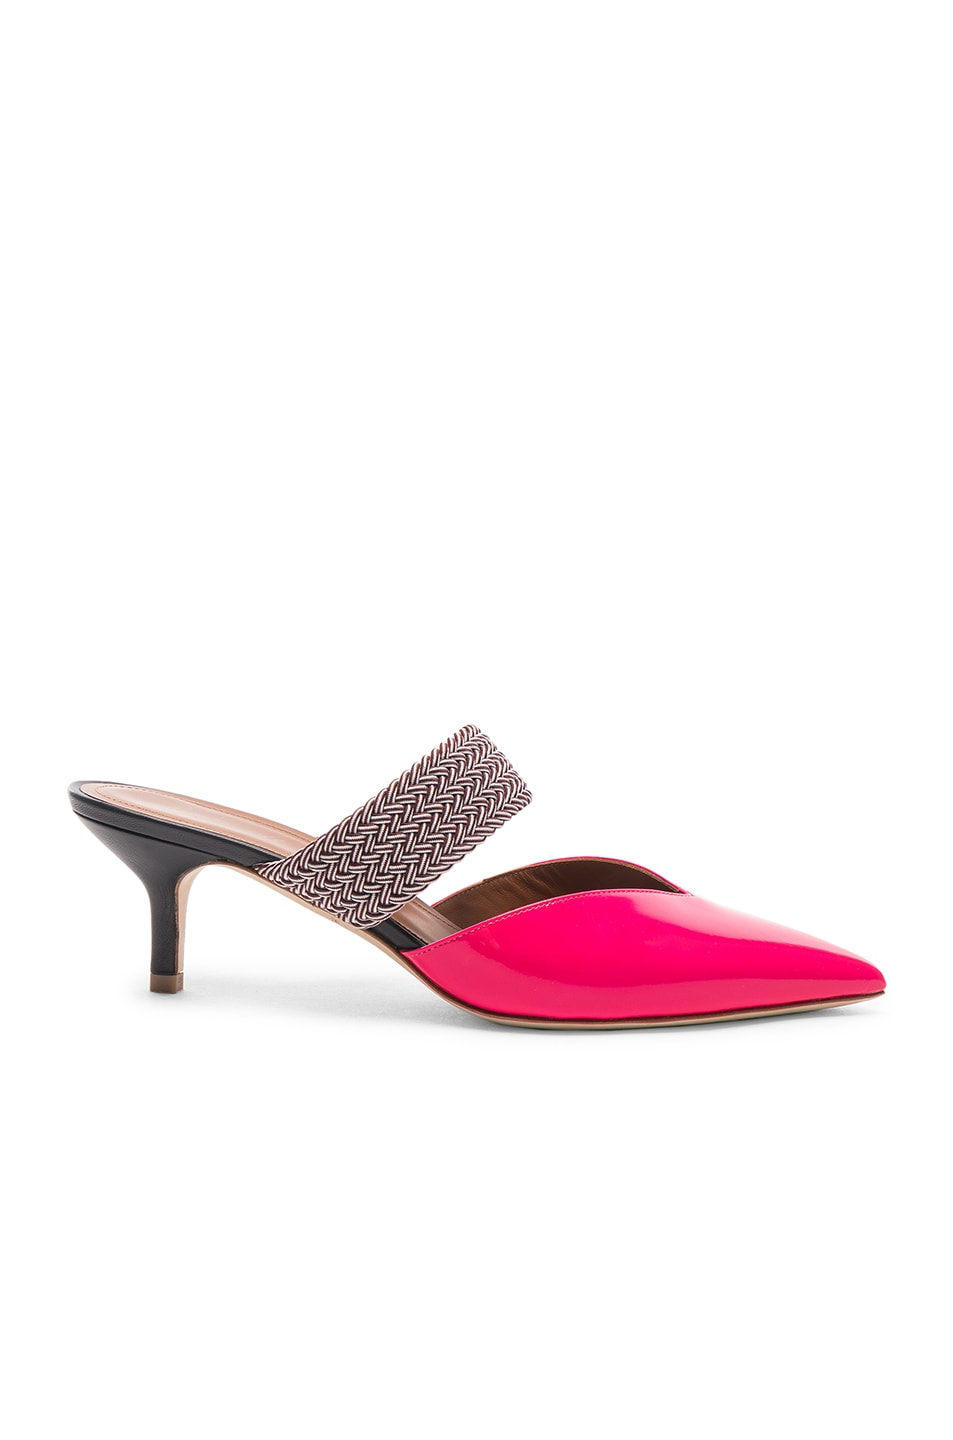 Image 1 of Malone Souliers Maisie Heel in Neon Pink, Burgundy & Navy